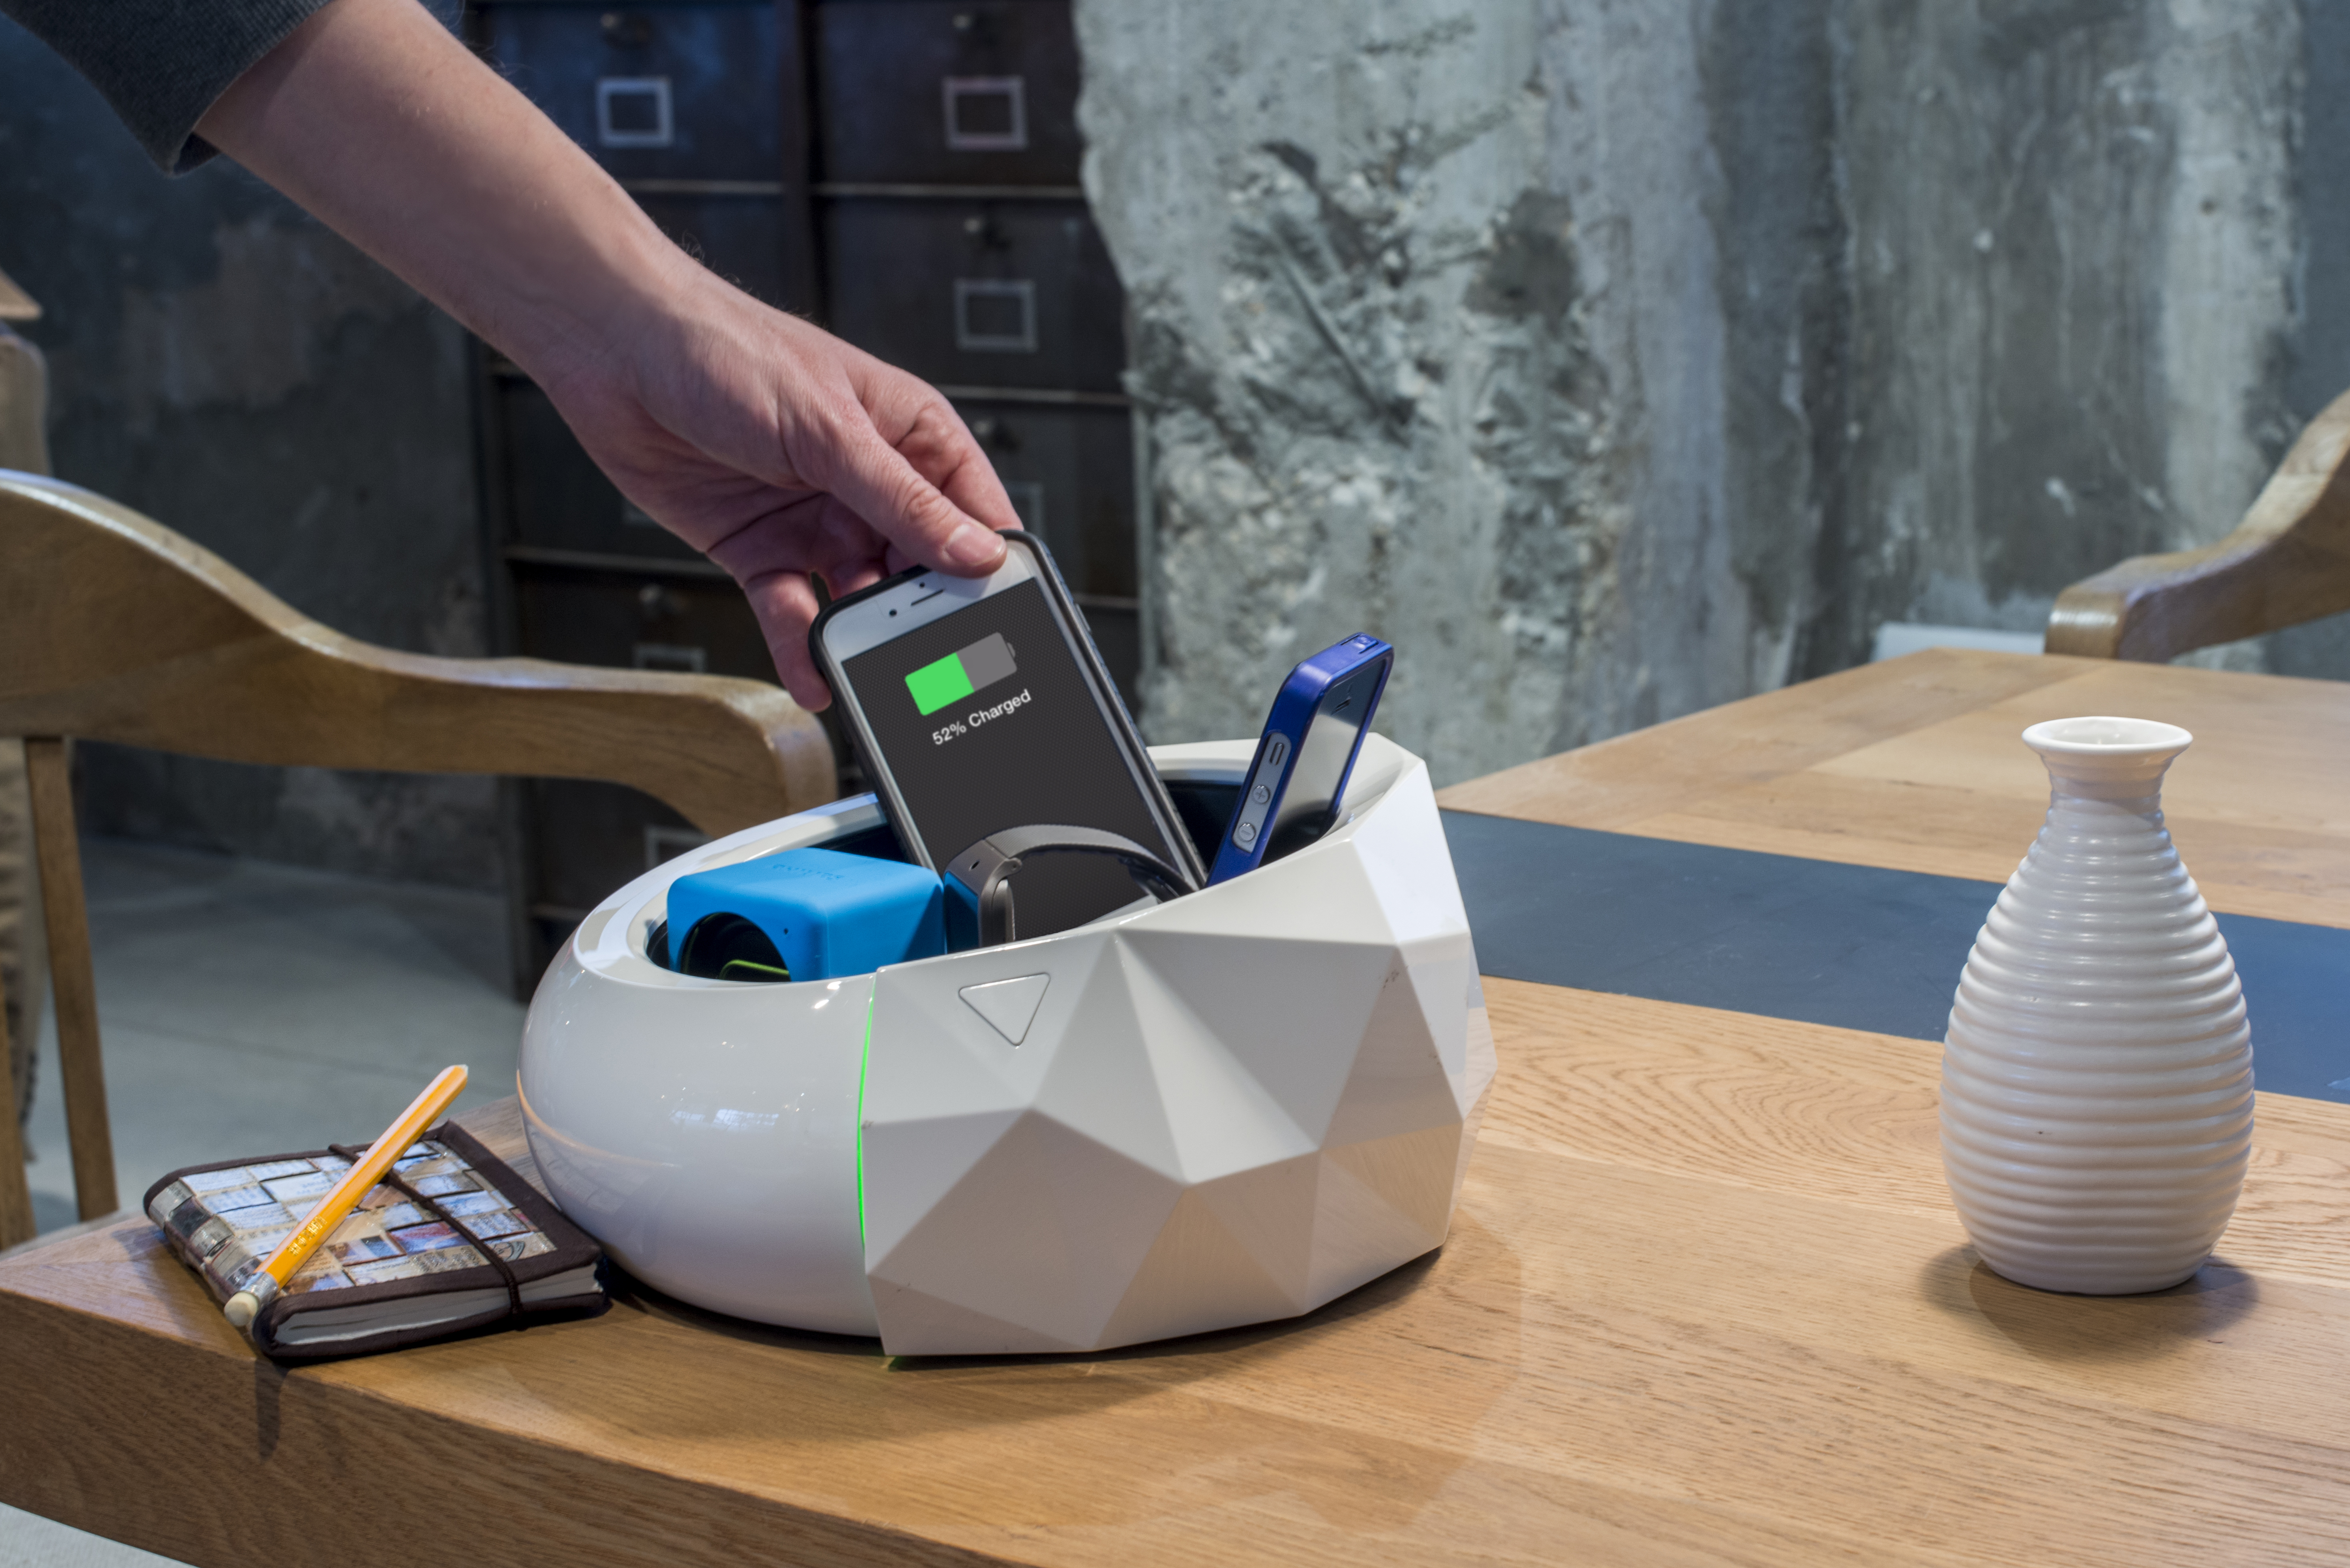 HUMAVOX Wirelessly Charging Multiple Devices